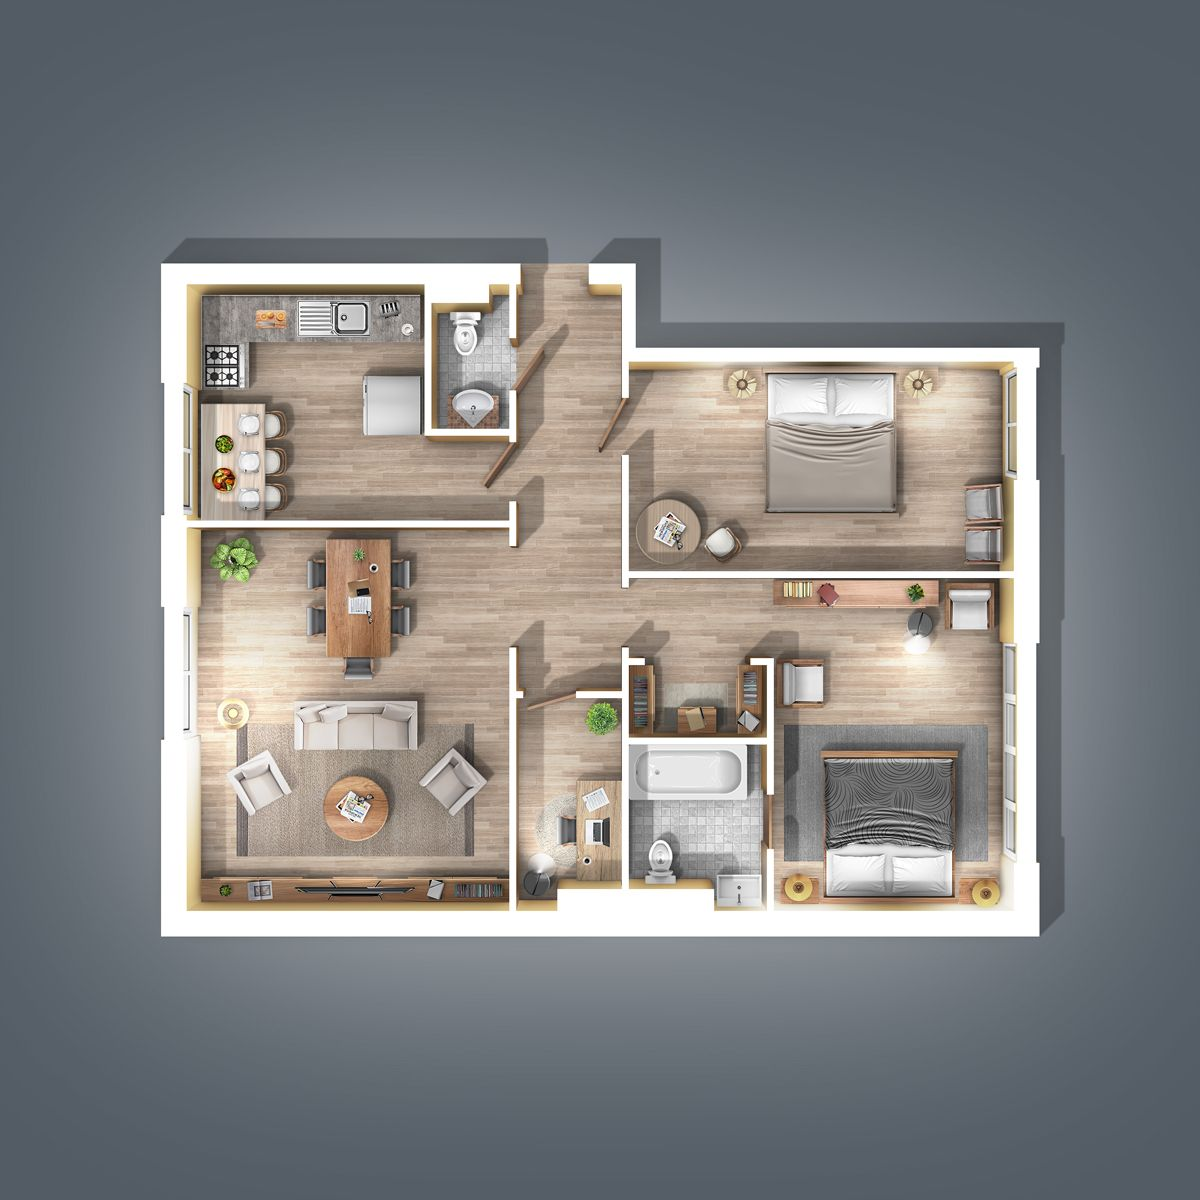 2d Plan Generator Photoshop Action Aff Generator Sponsored Plan Action Photoshop Rendered Floor Plan Small House Design Plans Small Apartment Plans